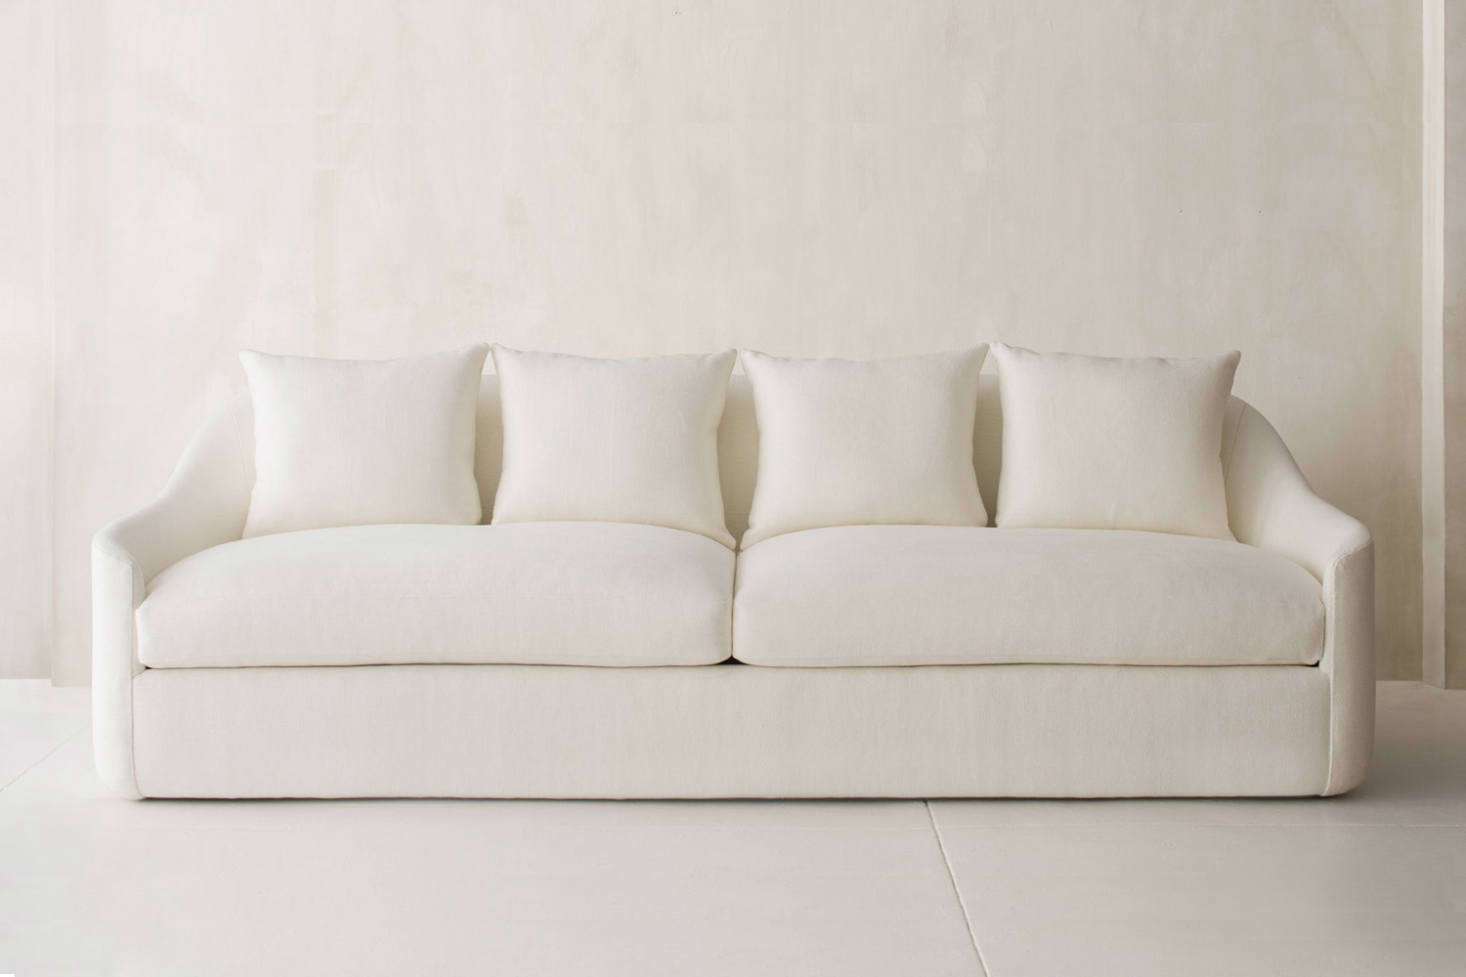 Antonio Citterio City Sofa 10 Easy Pieces The Perfect High End Luxury Sofa Remodelista